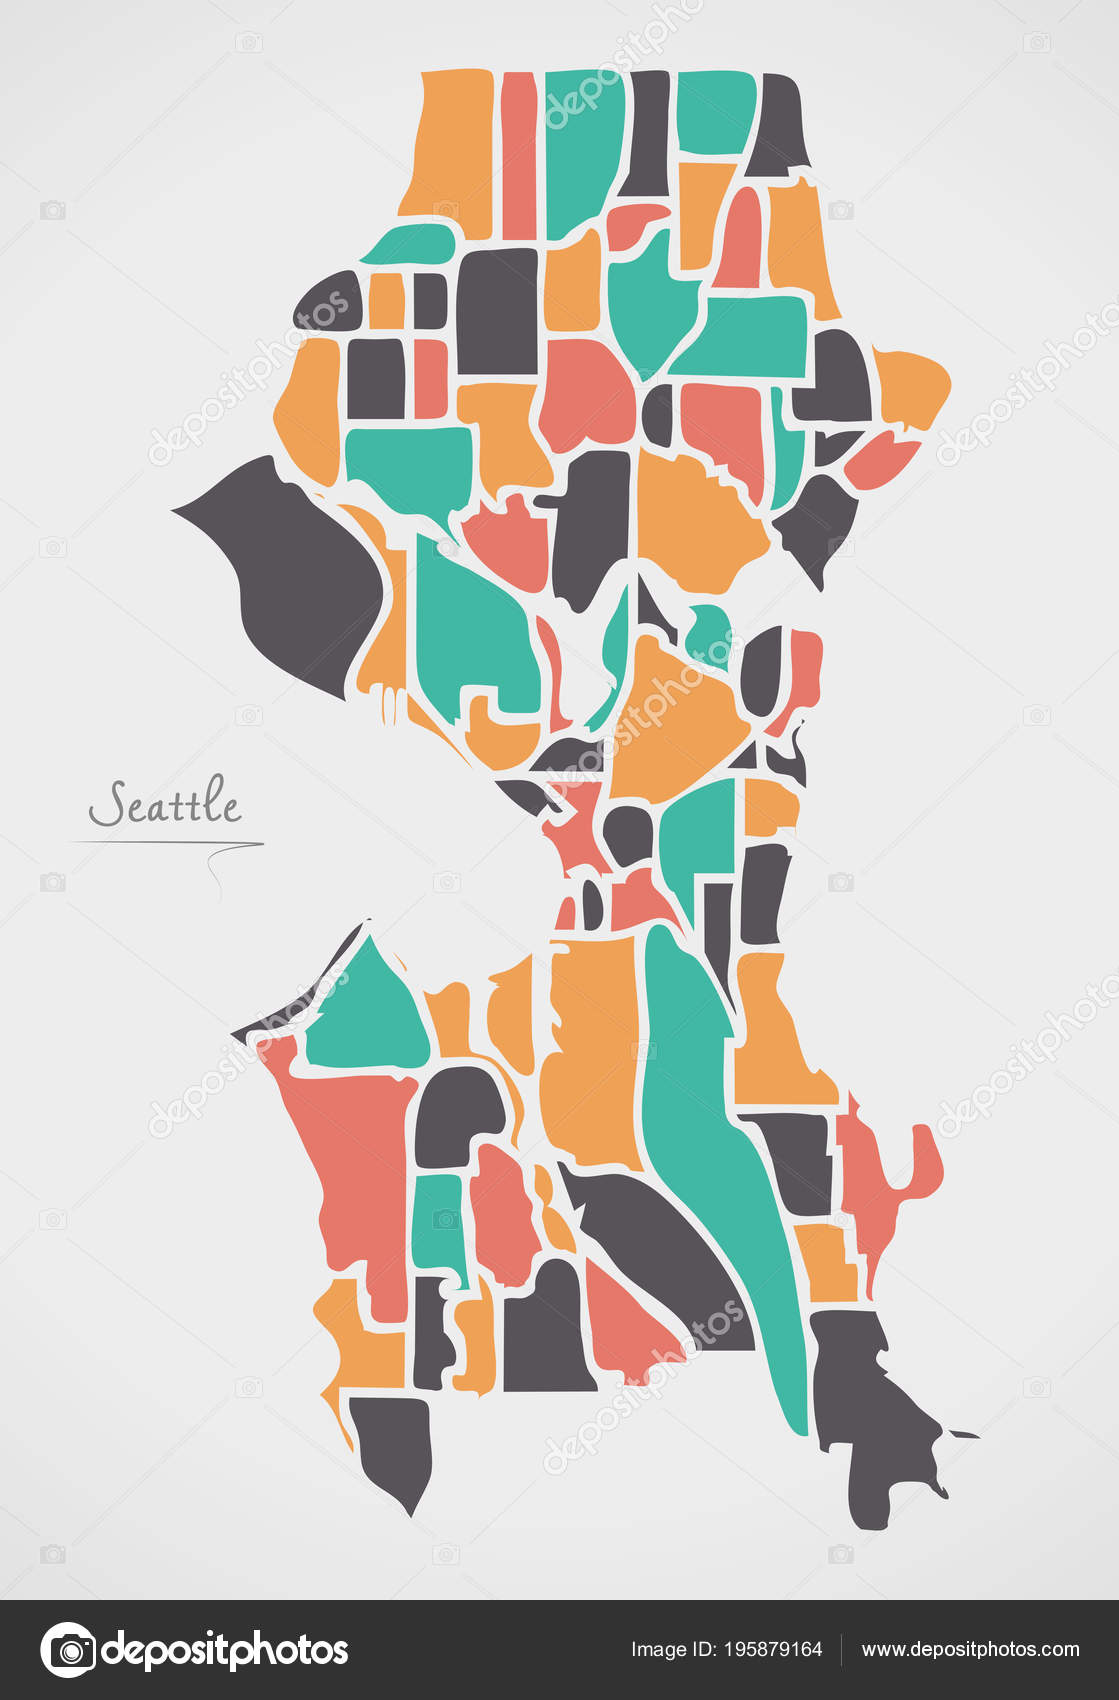 Seattle Washington Map Neighborhoods Modern Shapes Stock Vector